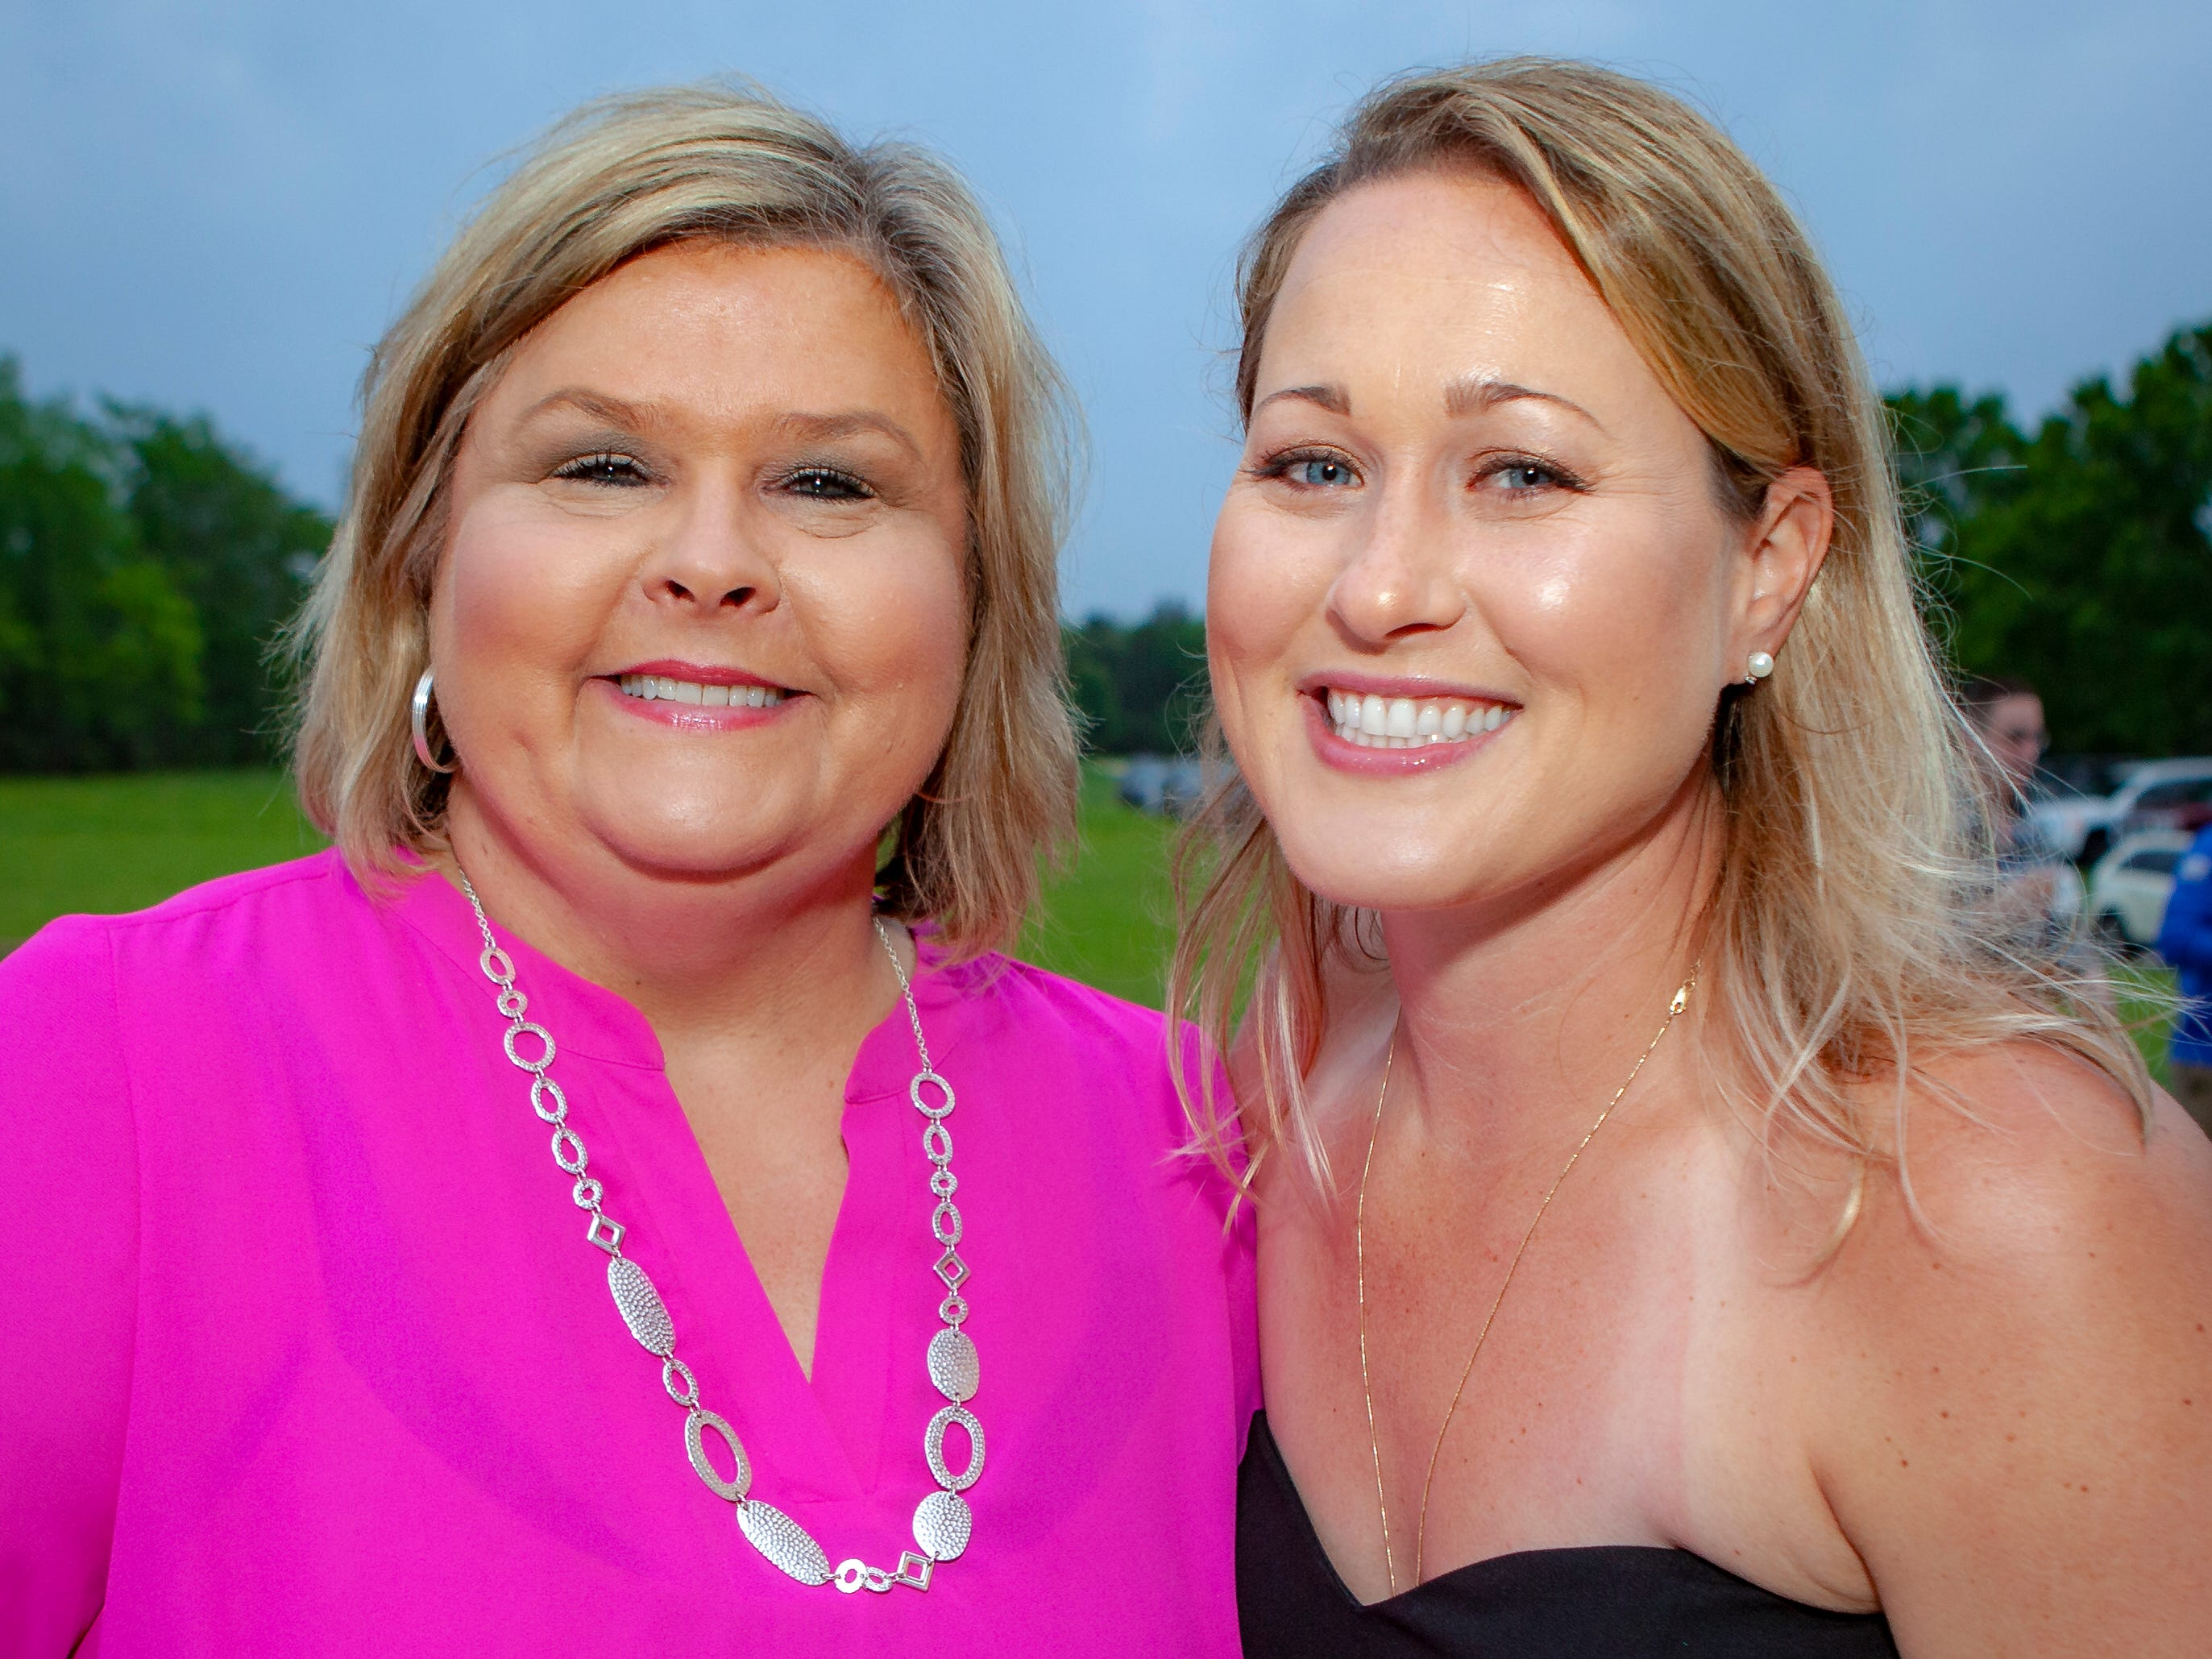 Kathy Smith and Dawn Dampier enjoyed a Cajun feast under the stars at United Way's Red, White and Bayou, held Friday, May 10, 2019 at the home of Jimmy & Nikkole Aho.